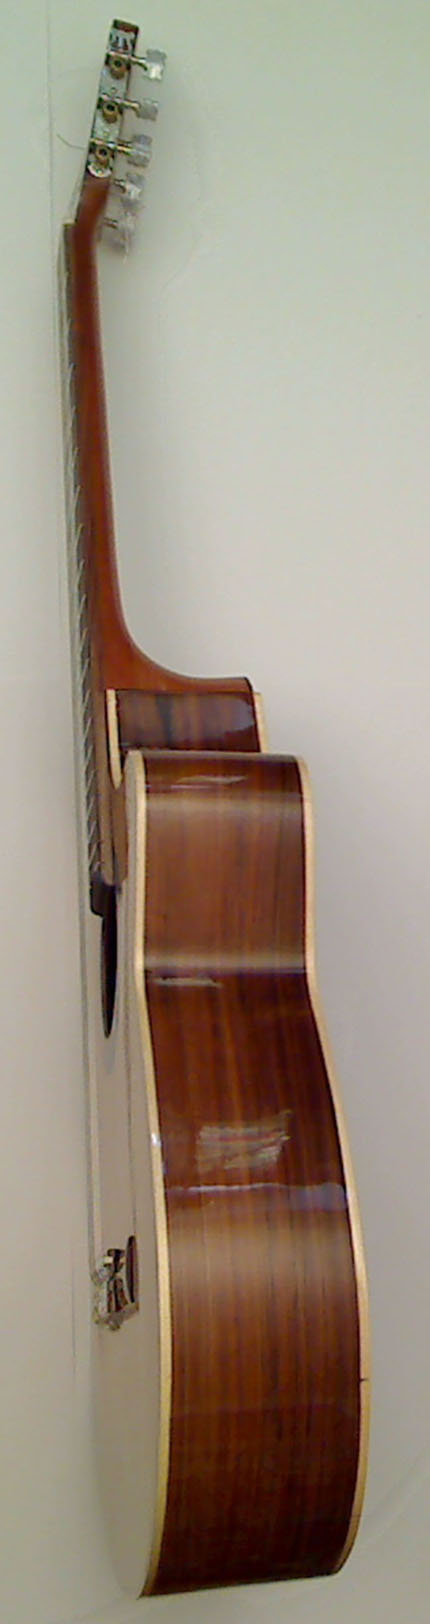 Classical Guitar View